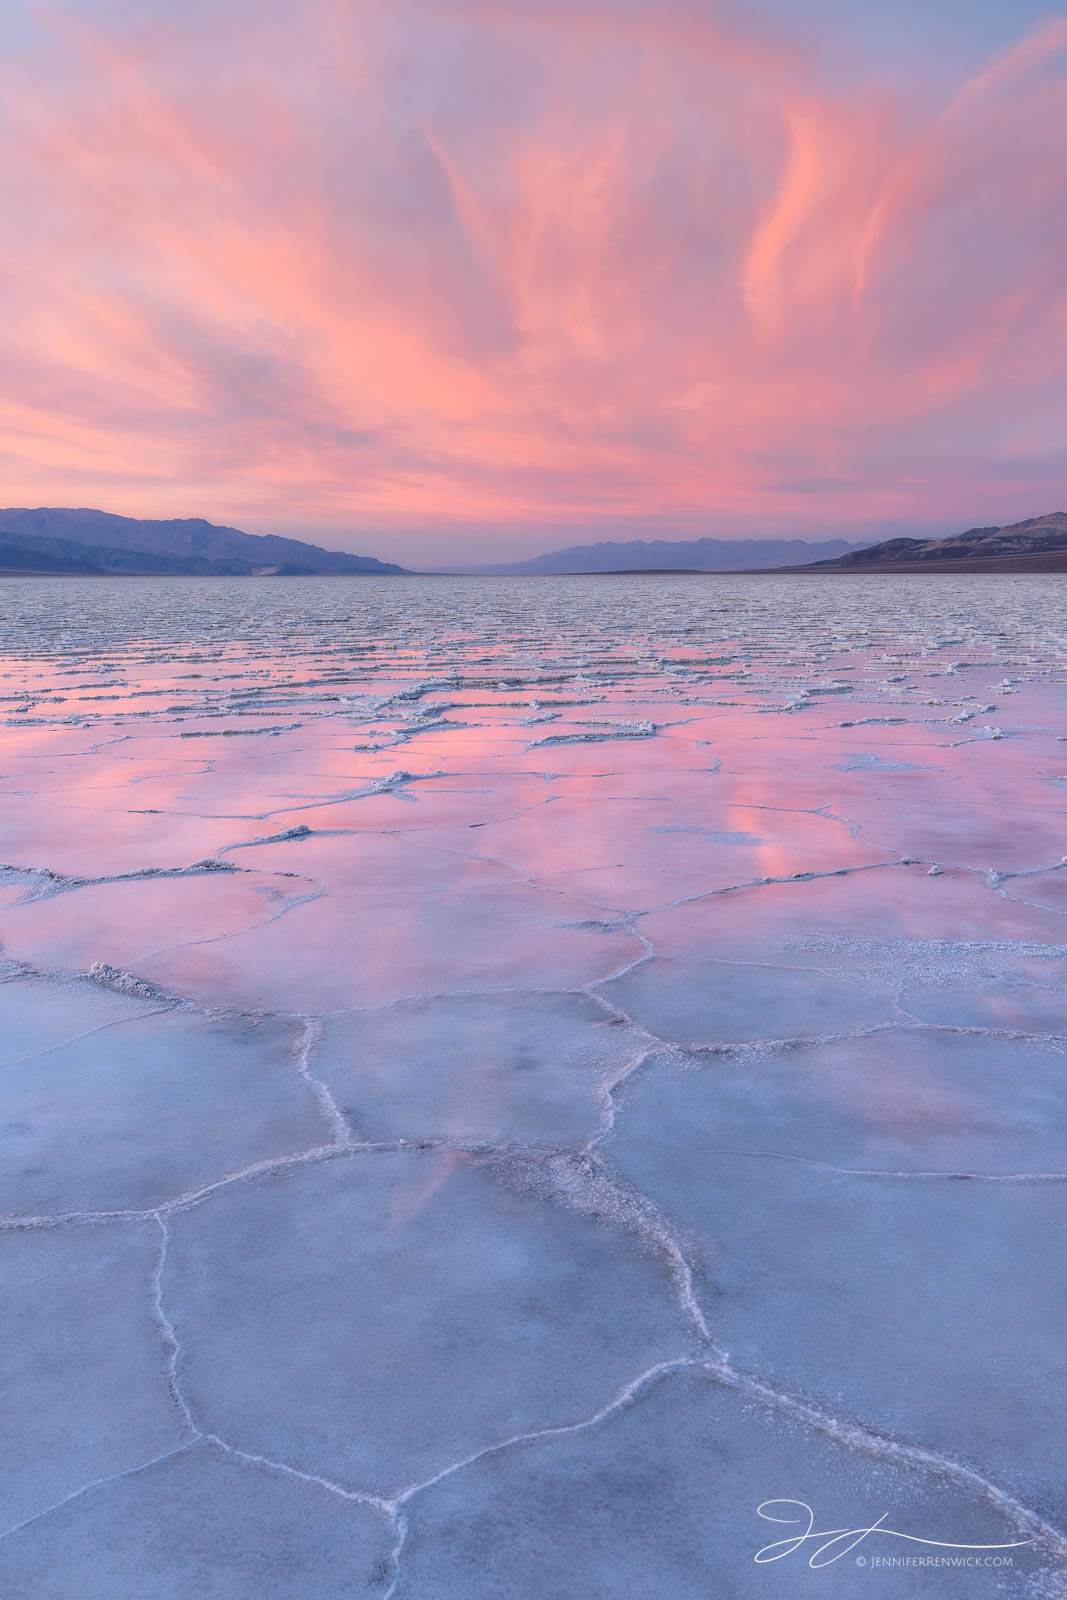 Badwater Basin, Death Valley National Park, California, landscape, sunset, reflection, flooded, salt polygons, photo